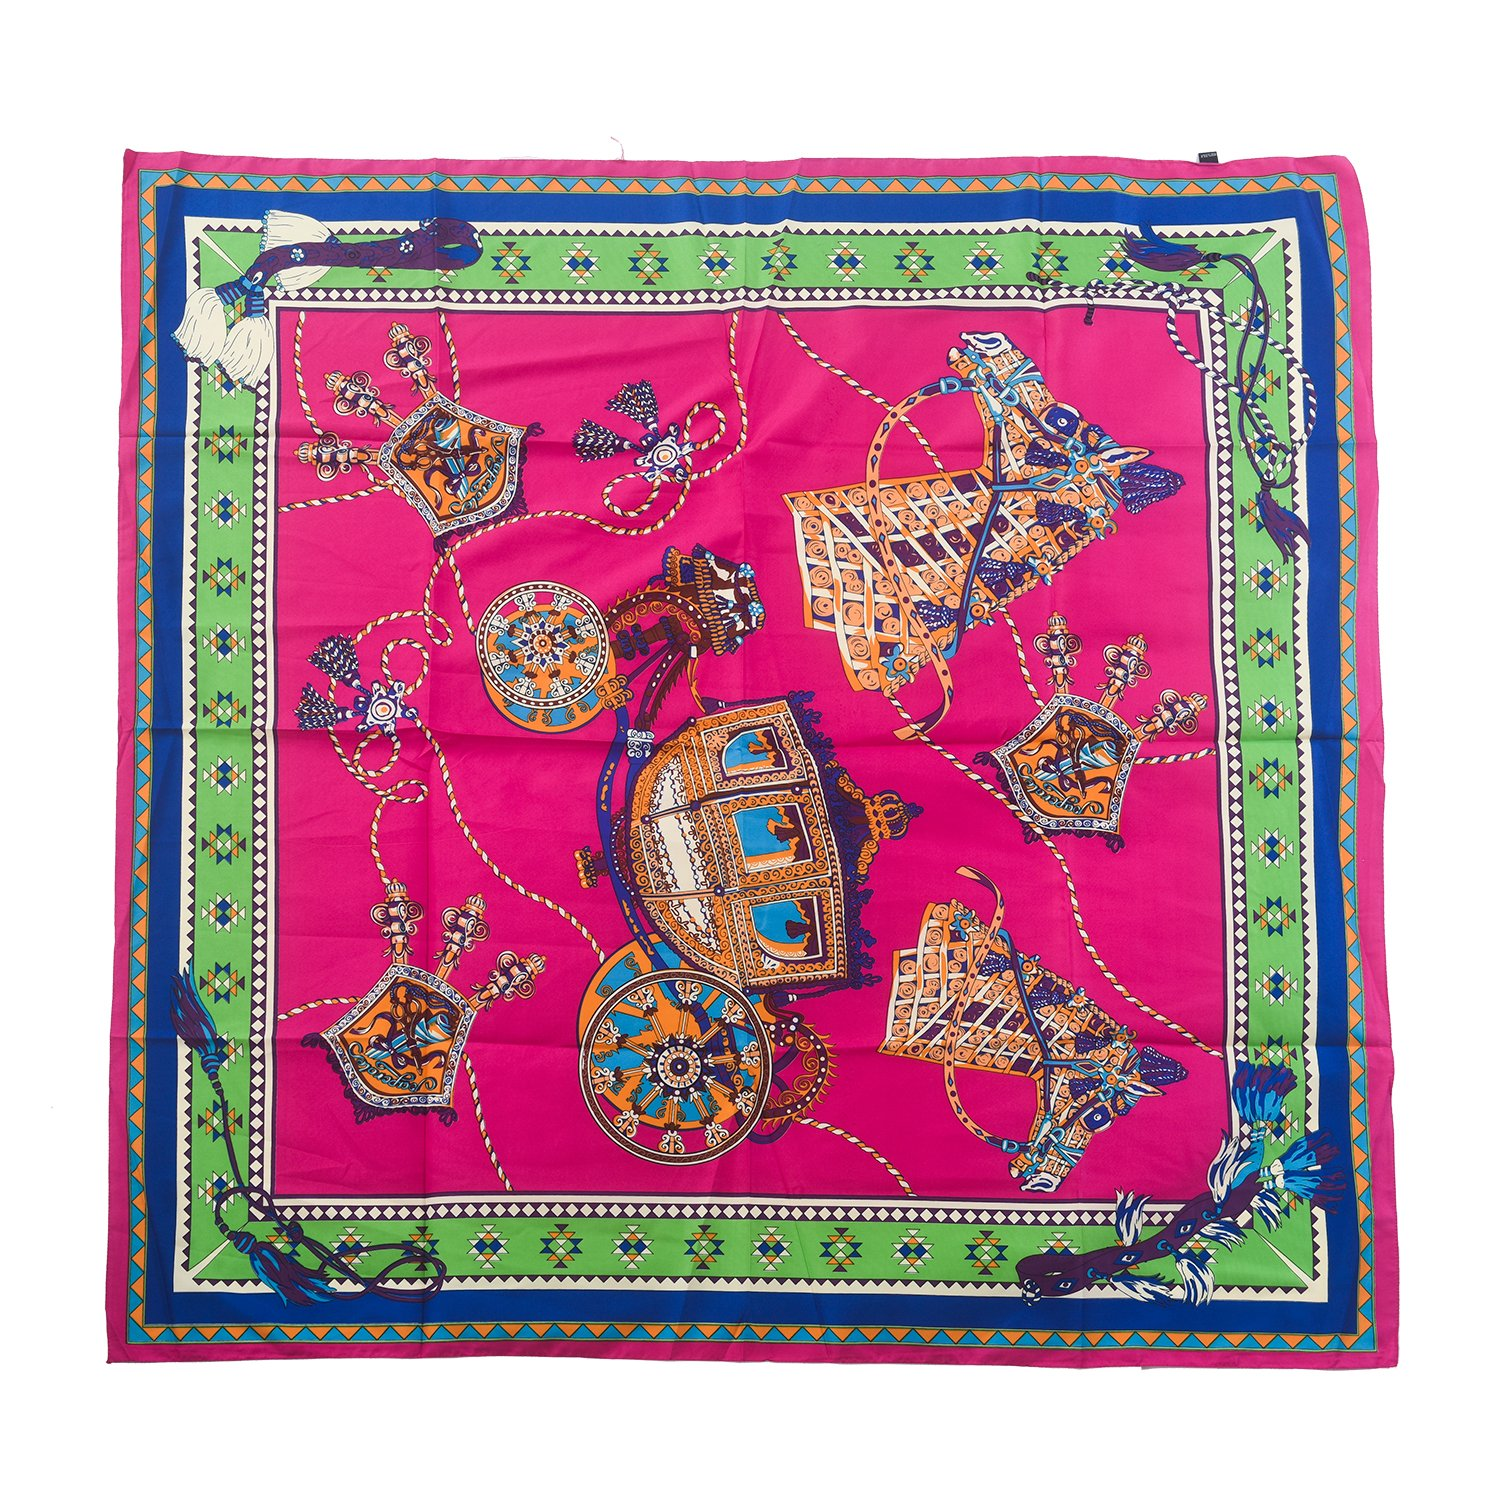 Aquazolax Women Satin Square Blanket Scarf - Print with Royal Style Badge and Carriage Pattern, 49 x 49 inch (125 x 125cm), 4-Hot Pink